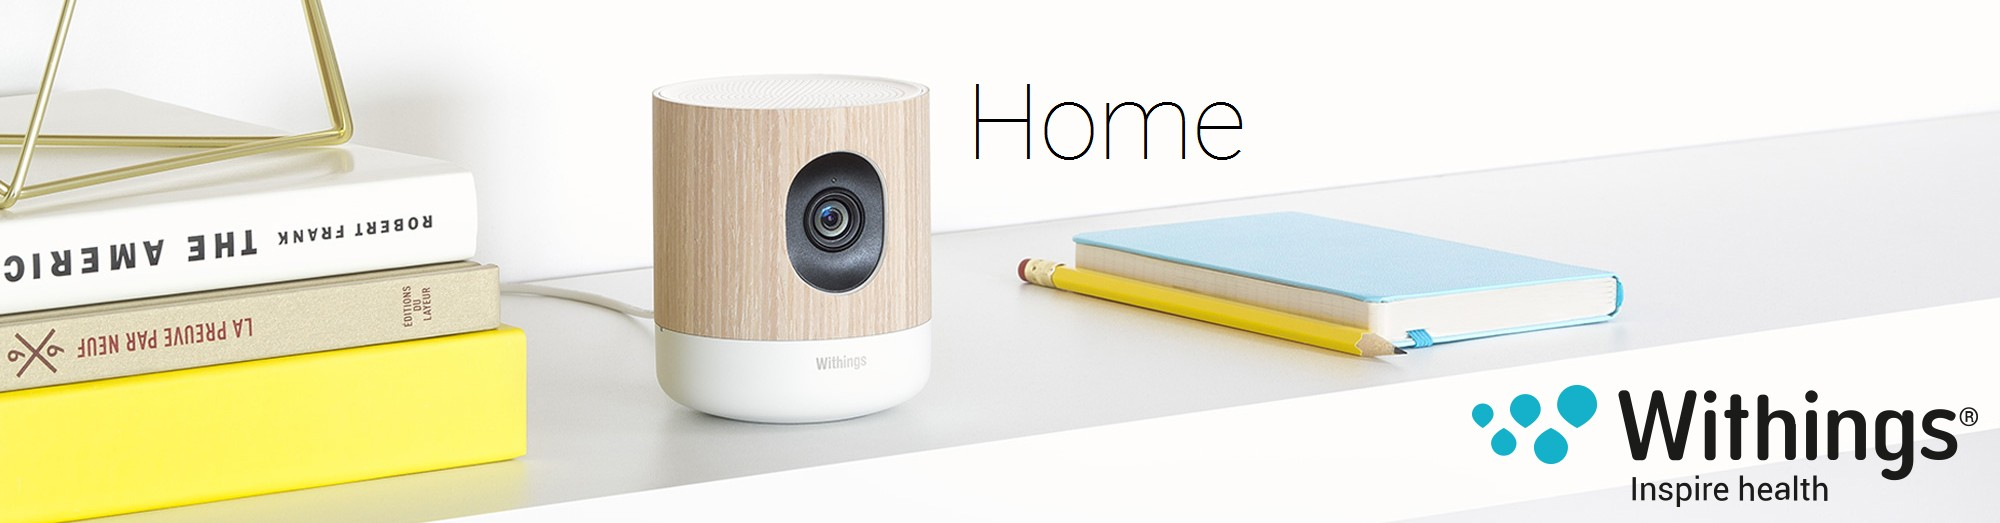 Withings Home présenation